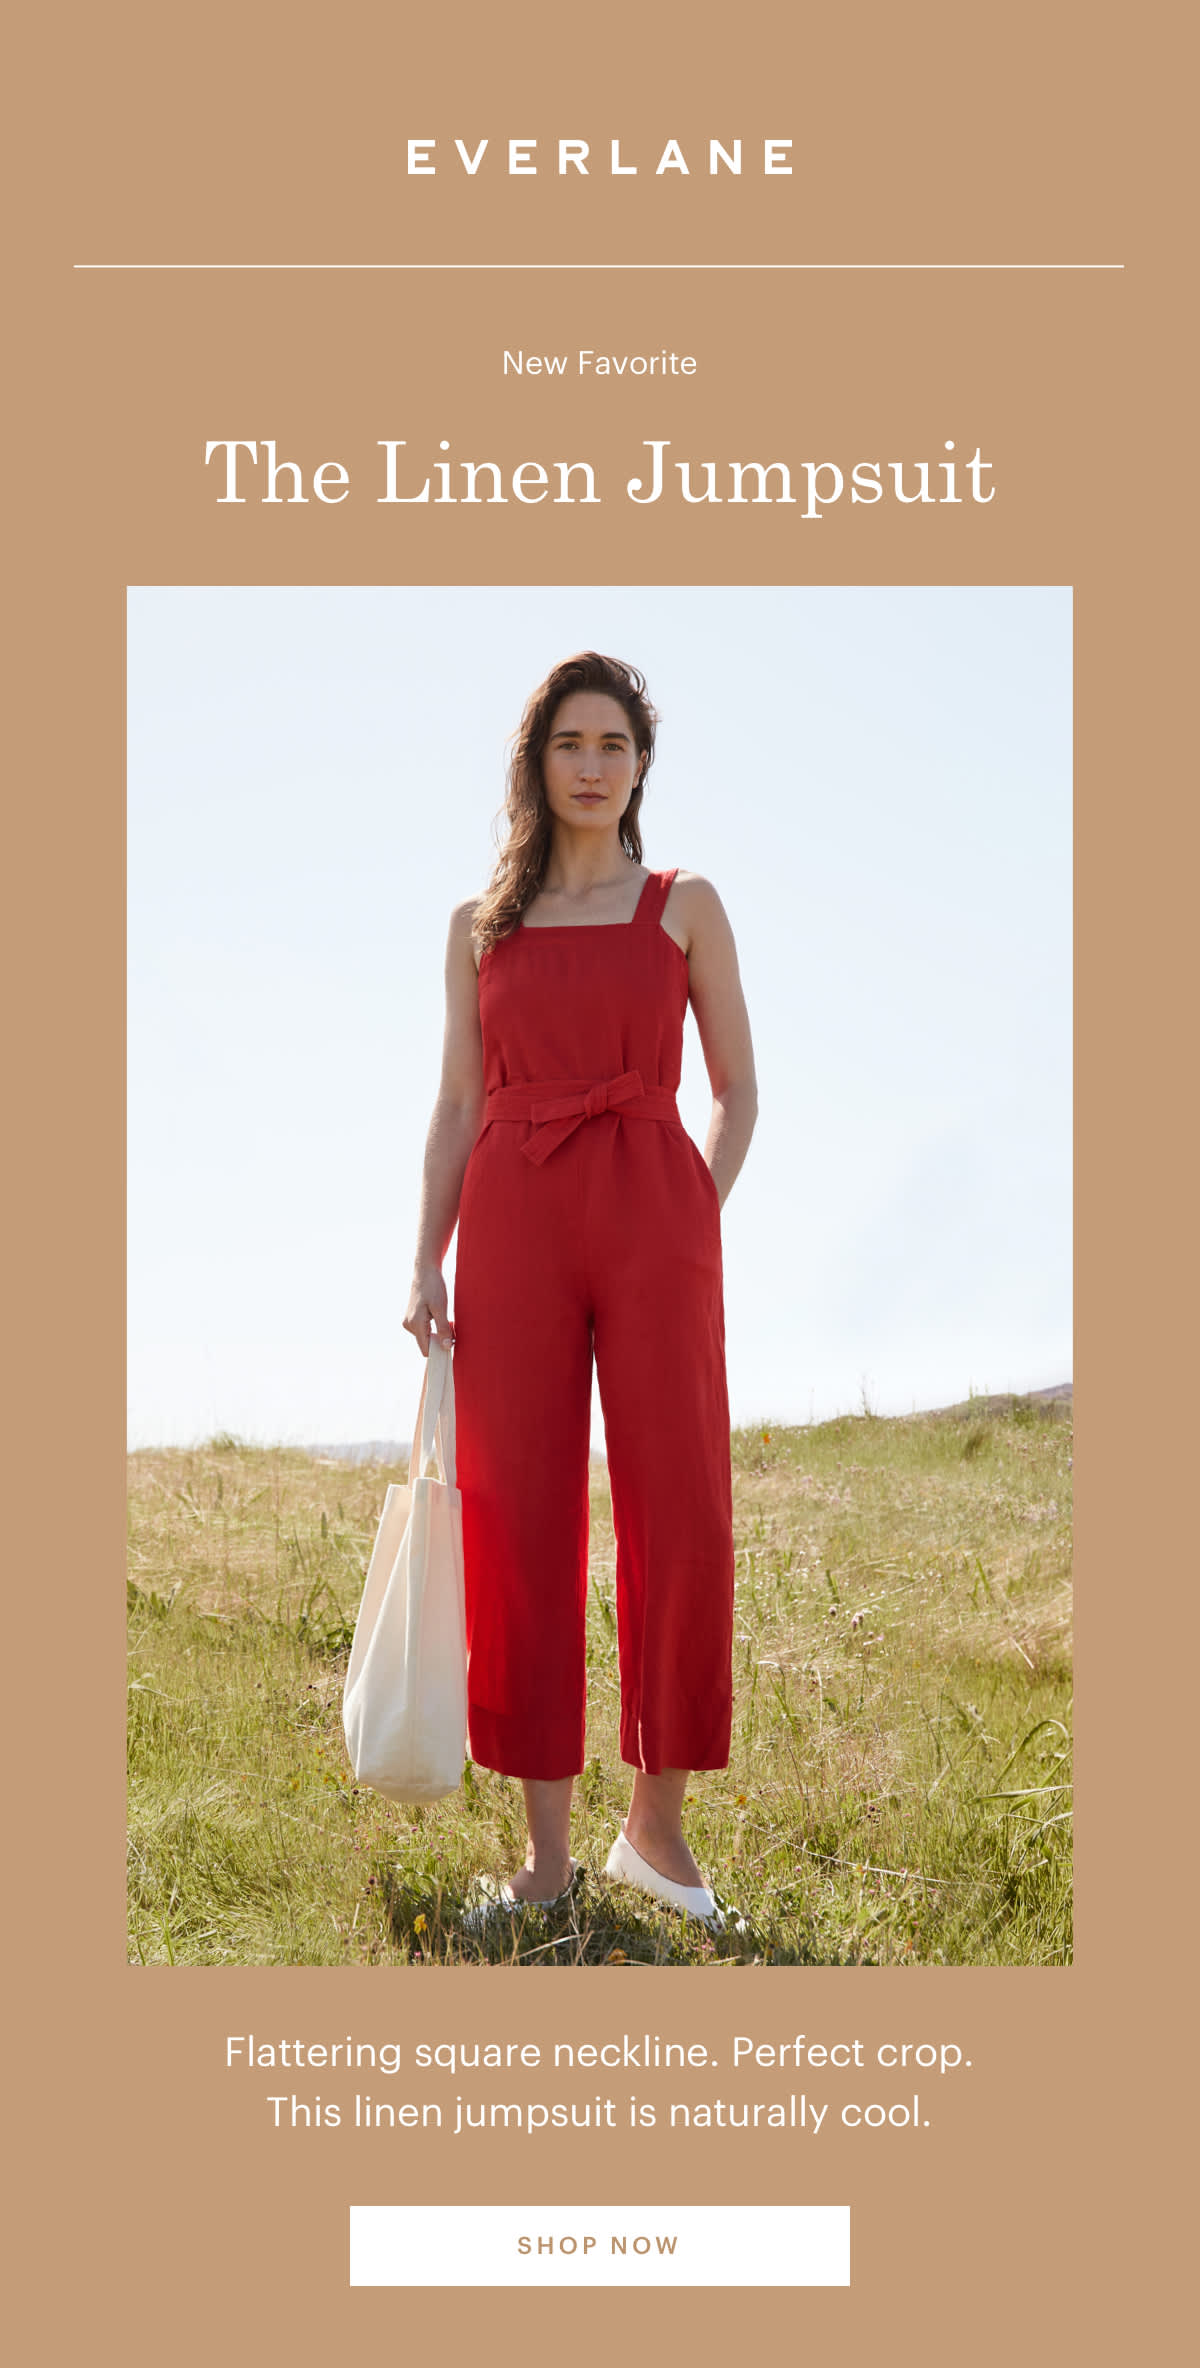 Flattering square neckline. Perfect crop. This linen jumpsuit is naturally cool. SHOP NOW